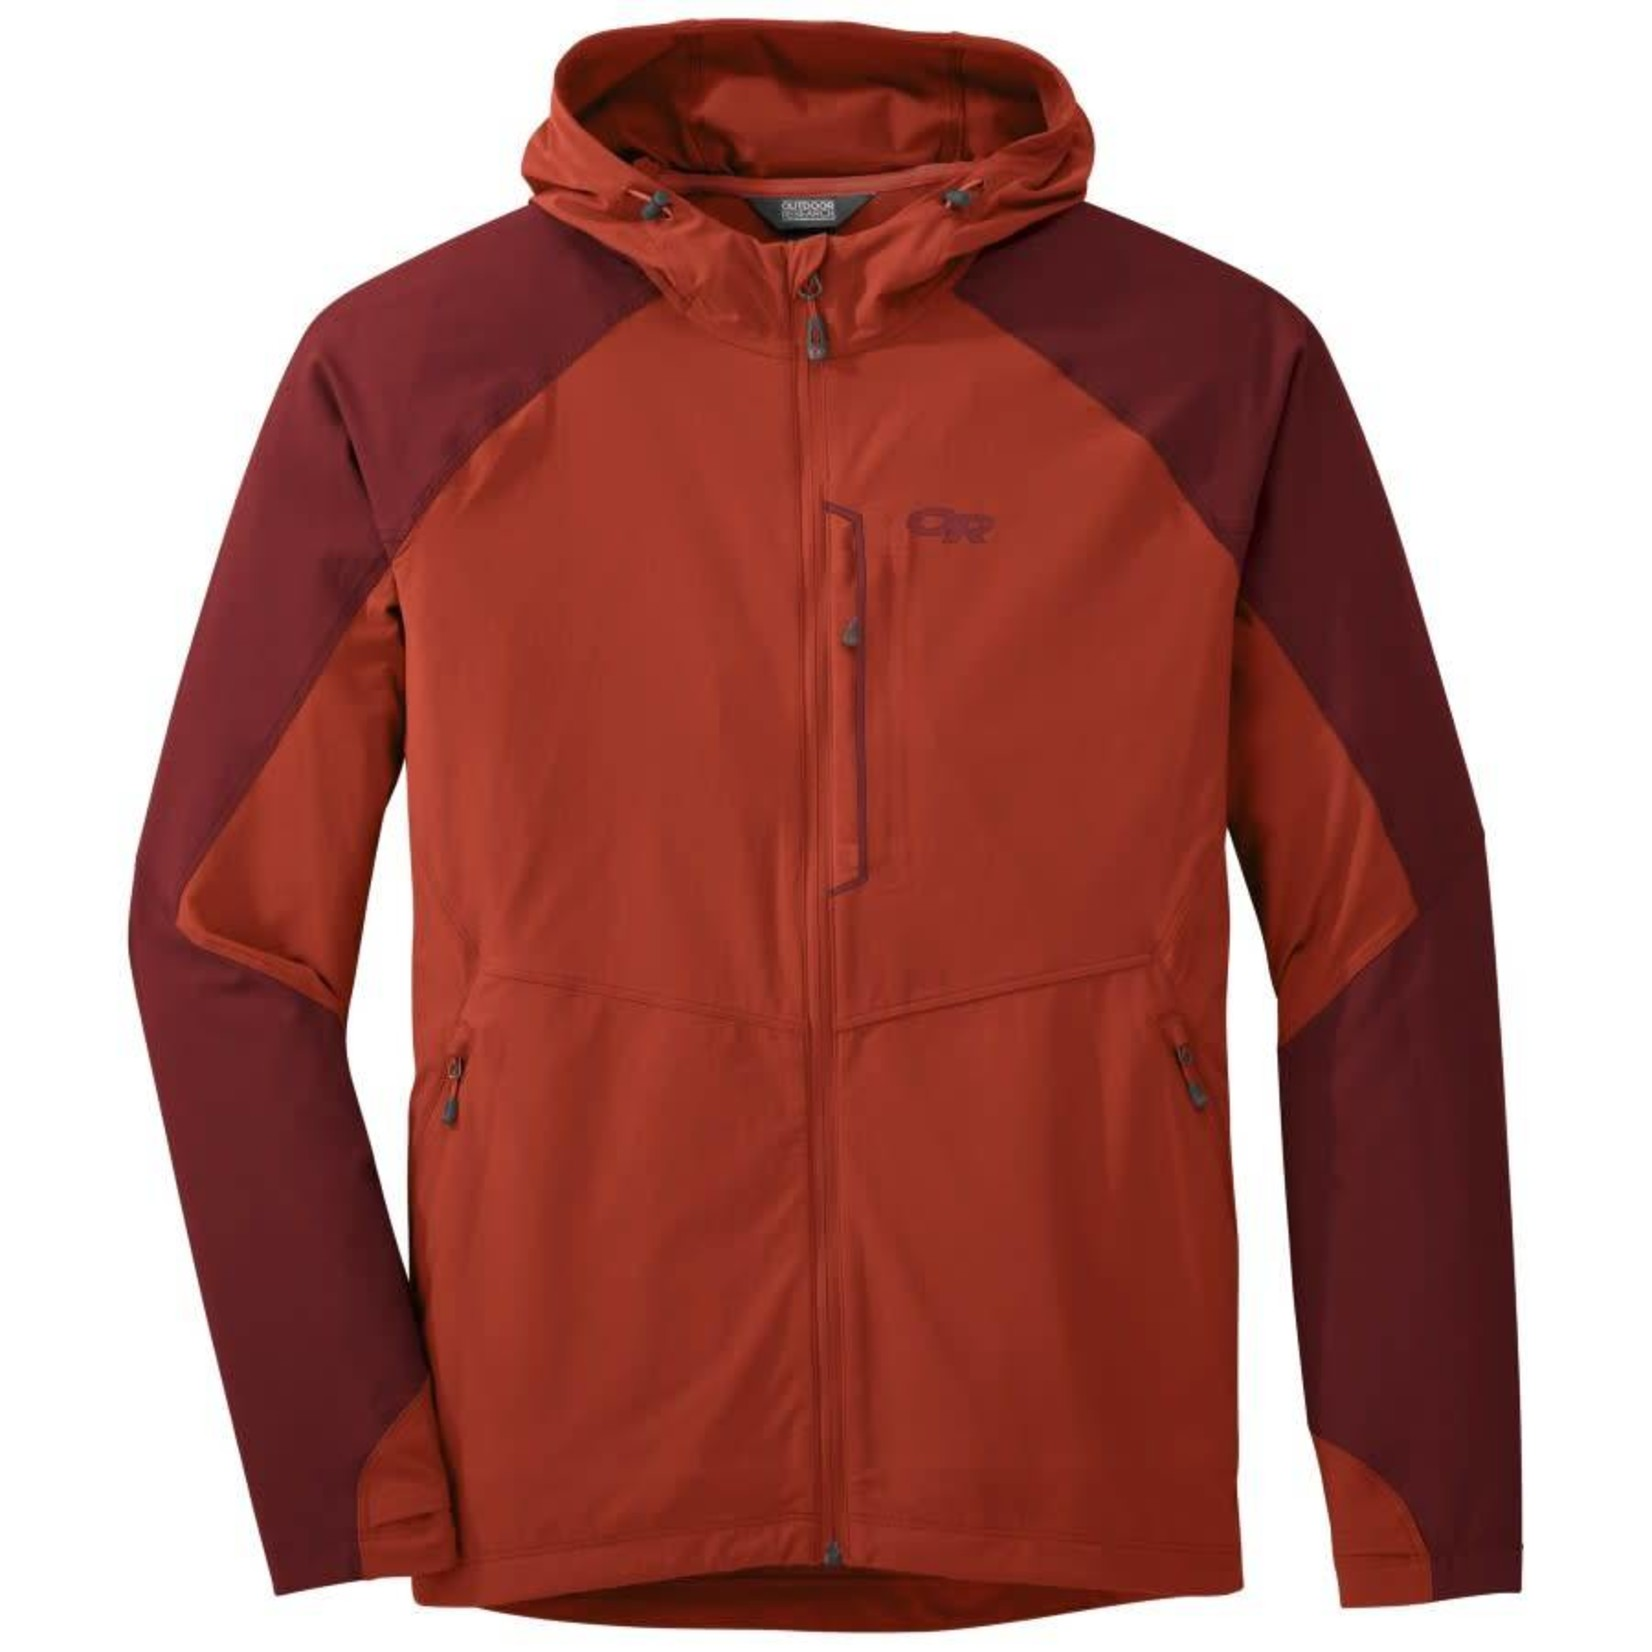 Outdoor Research Outdoor Research Ferrosi Hooded Jacket - Men